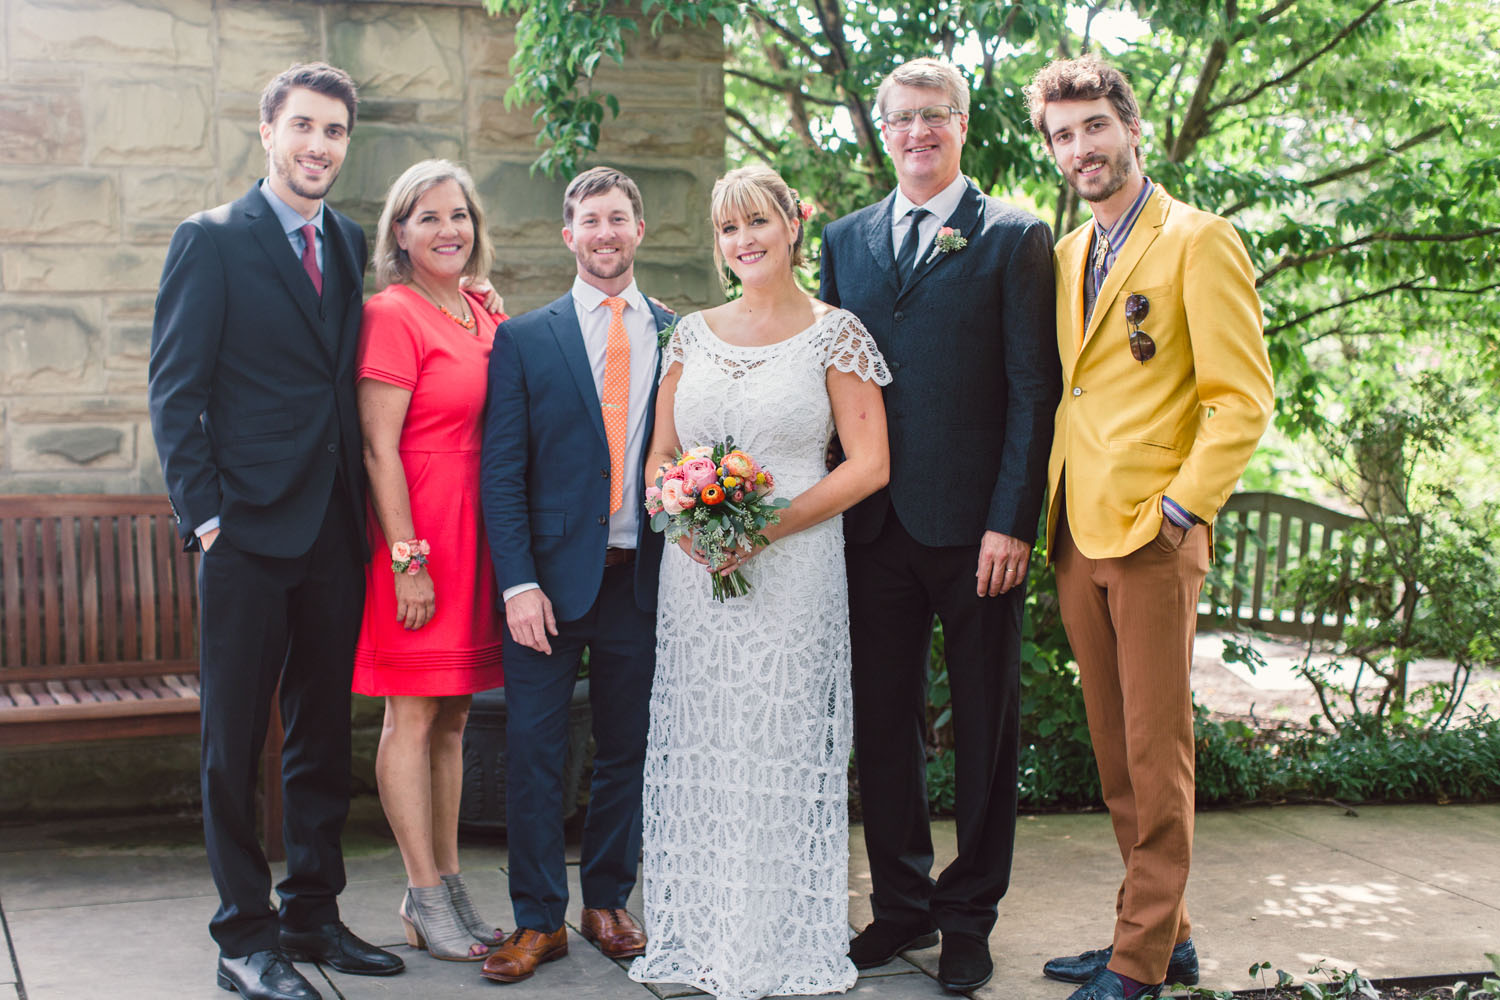 Pete Nelson's family picture from Emily's wedding with Patrick